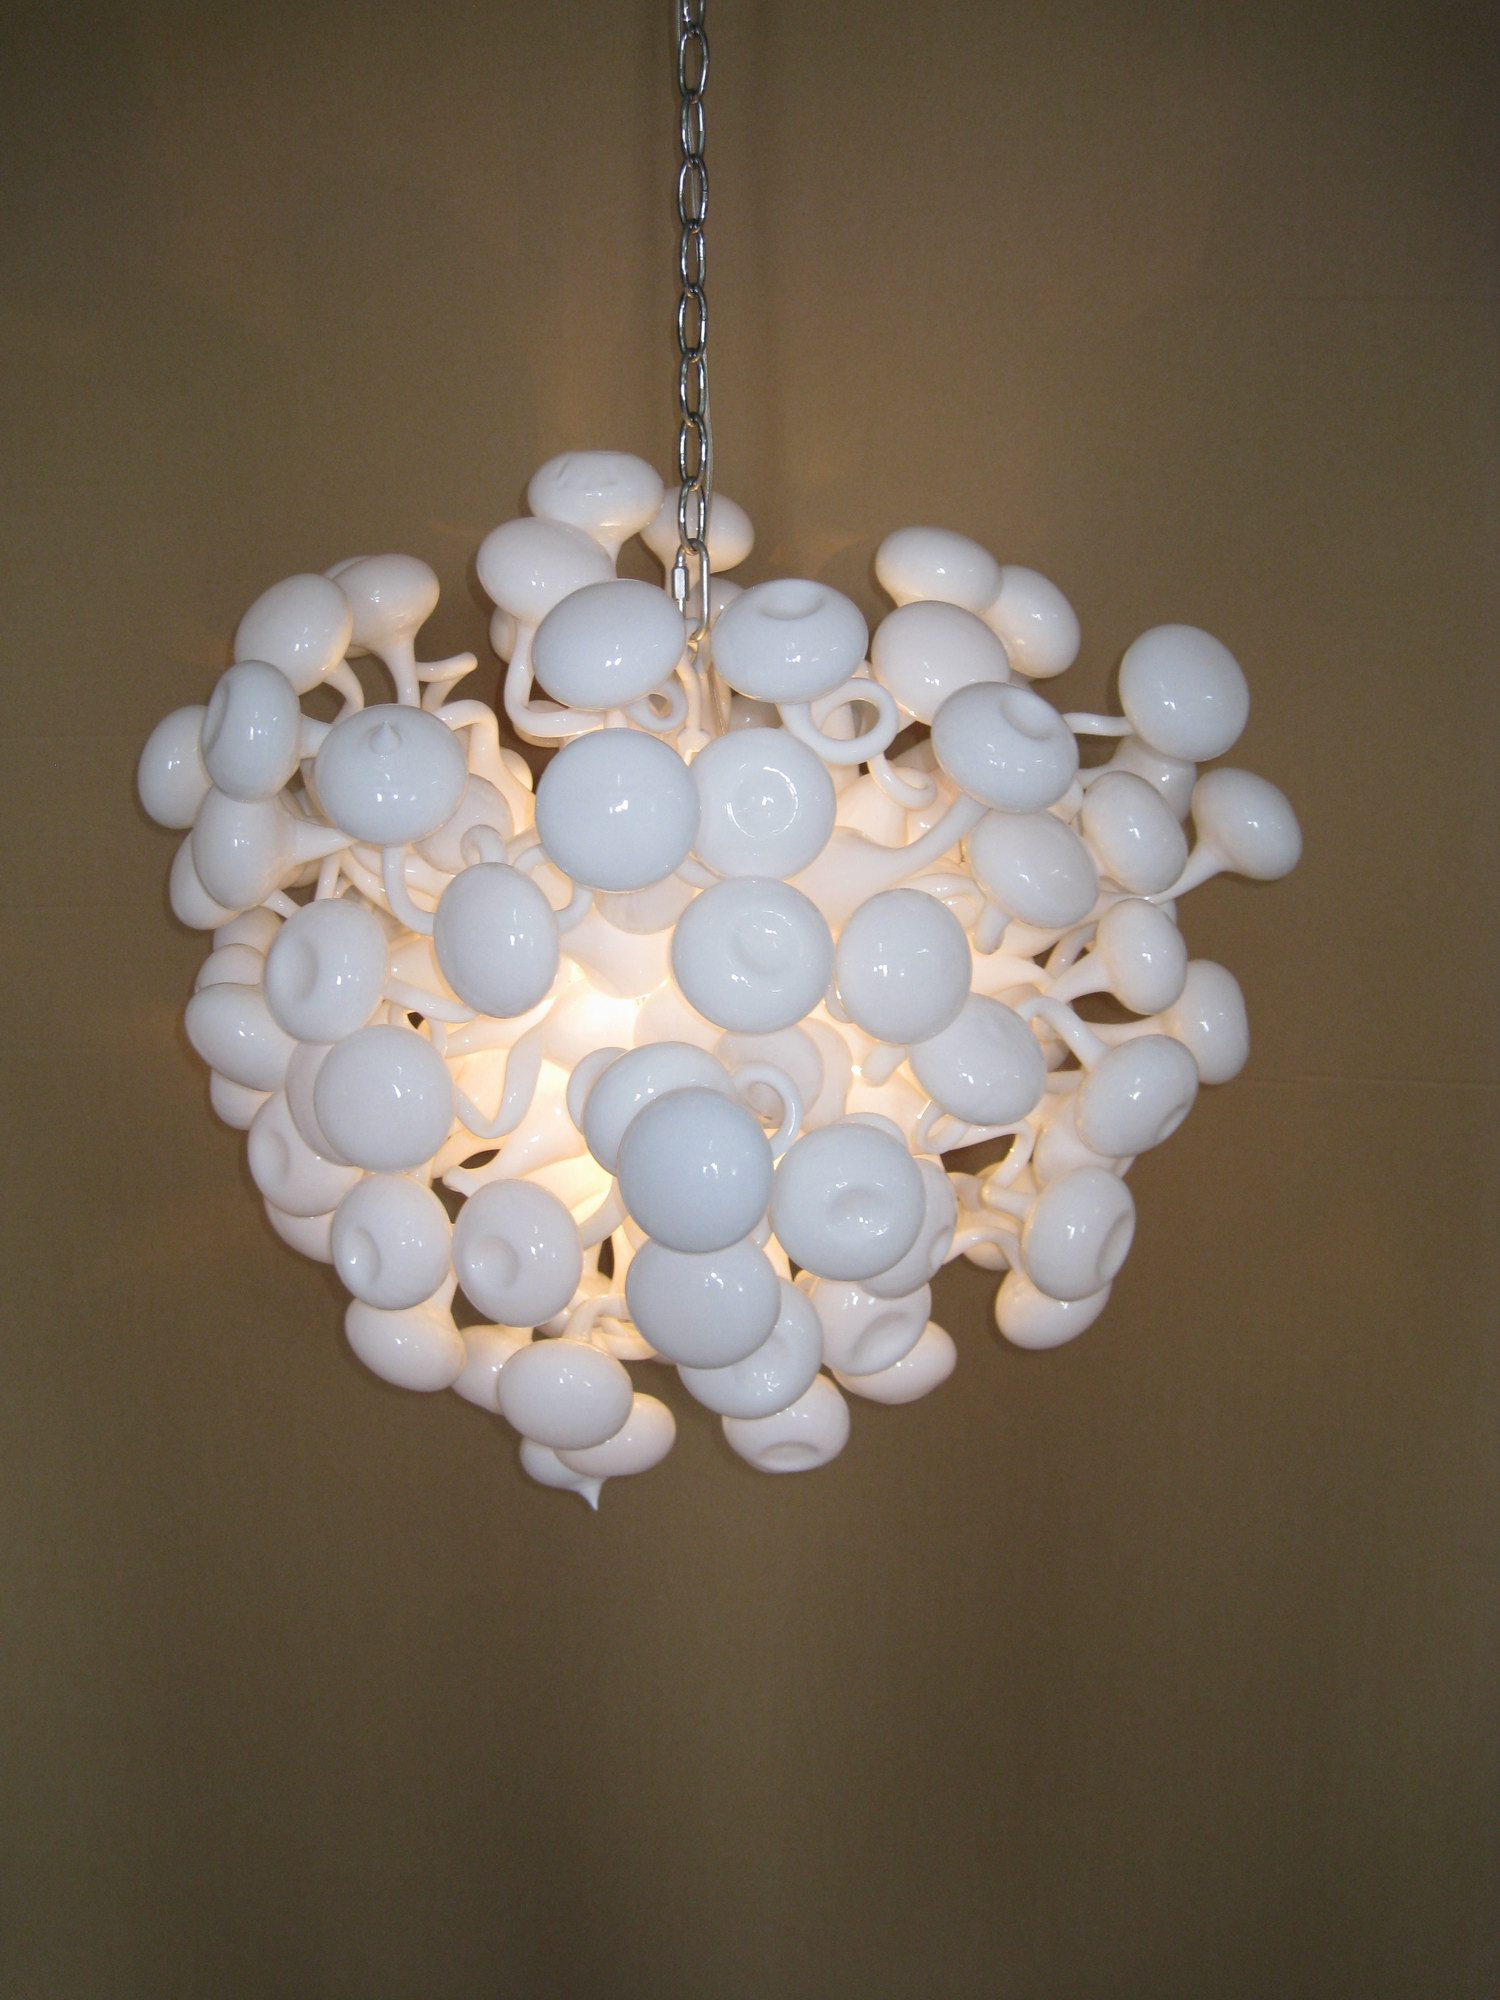 Quality Home Decor Blown Murano Glass White Ball Ceiling Lamp